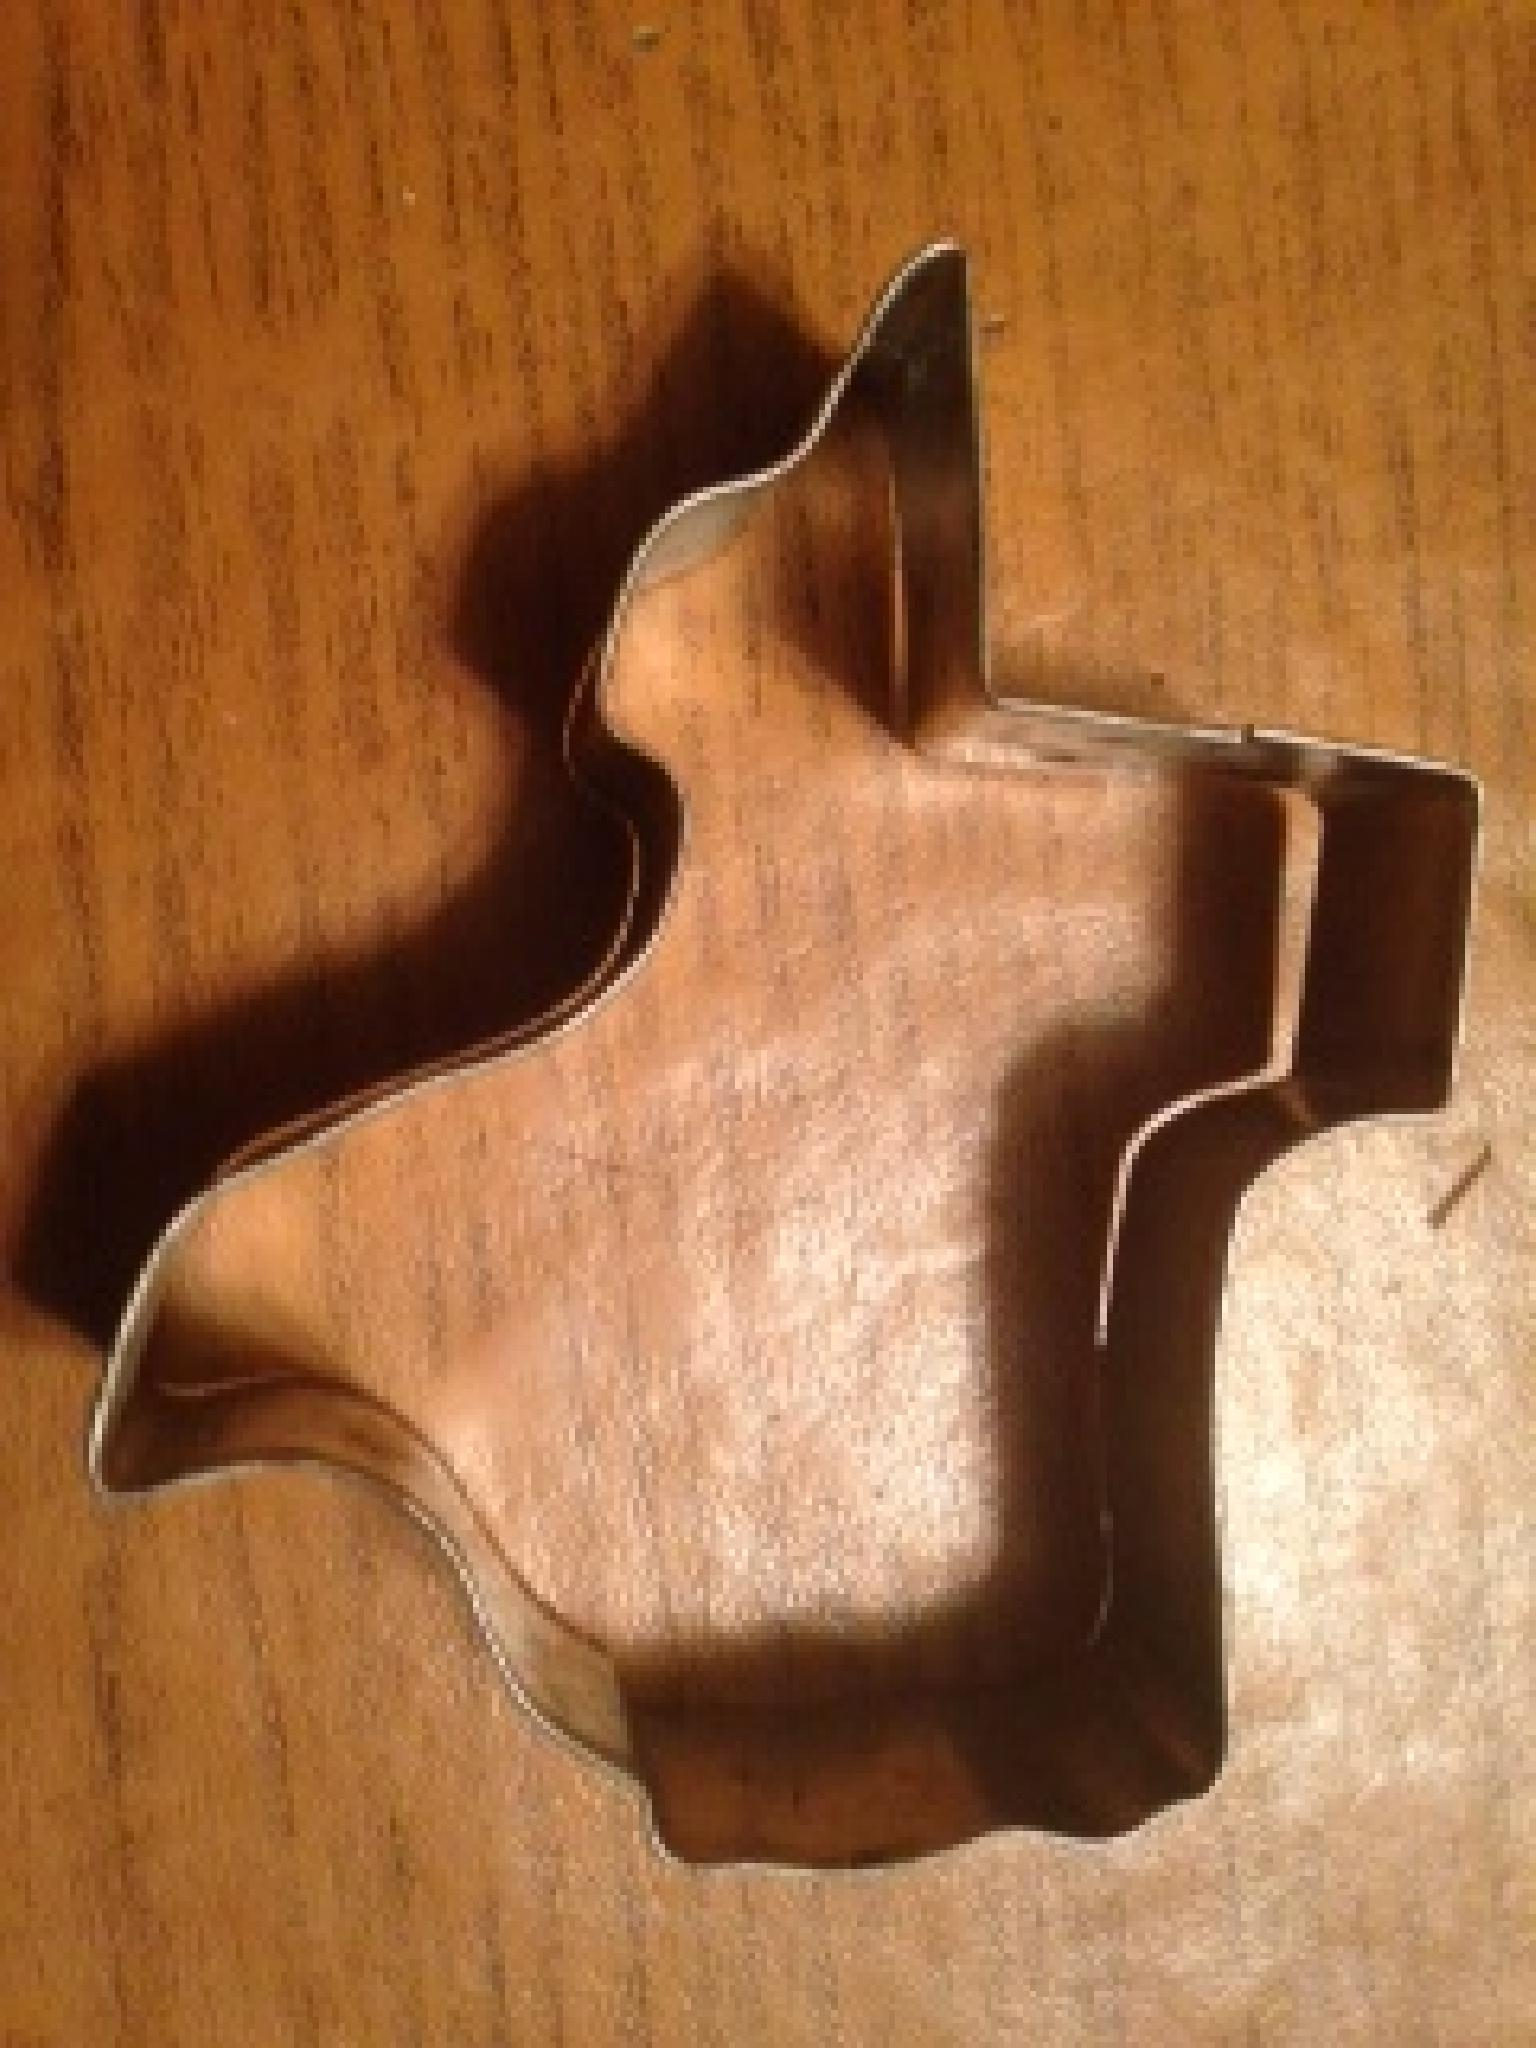 A Tin Cookie Cutter by Kit